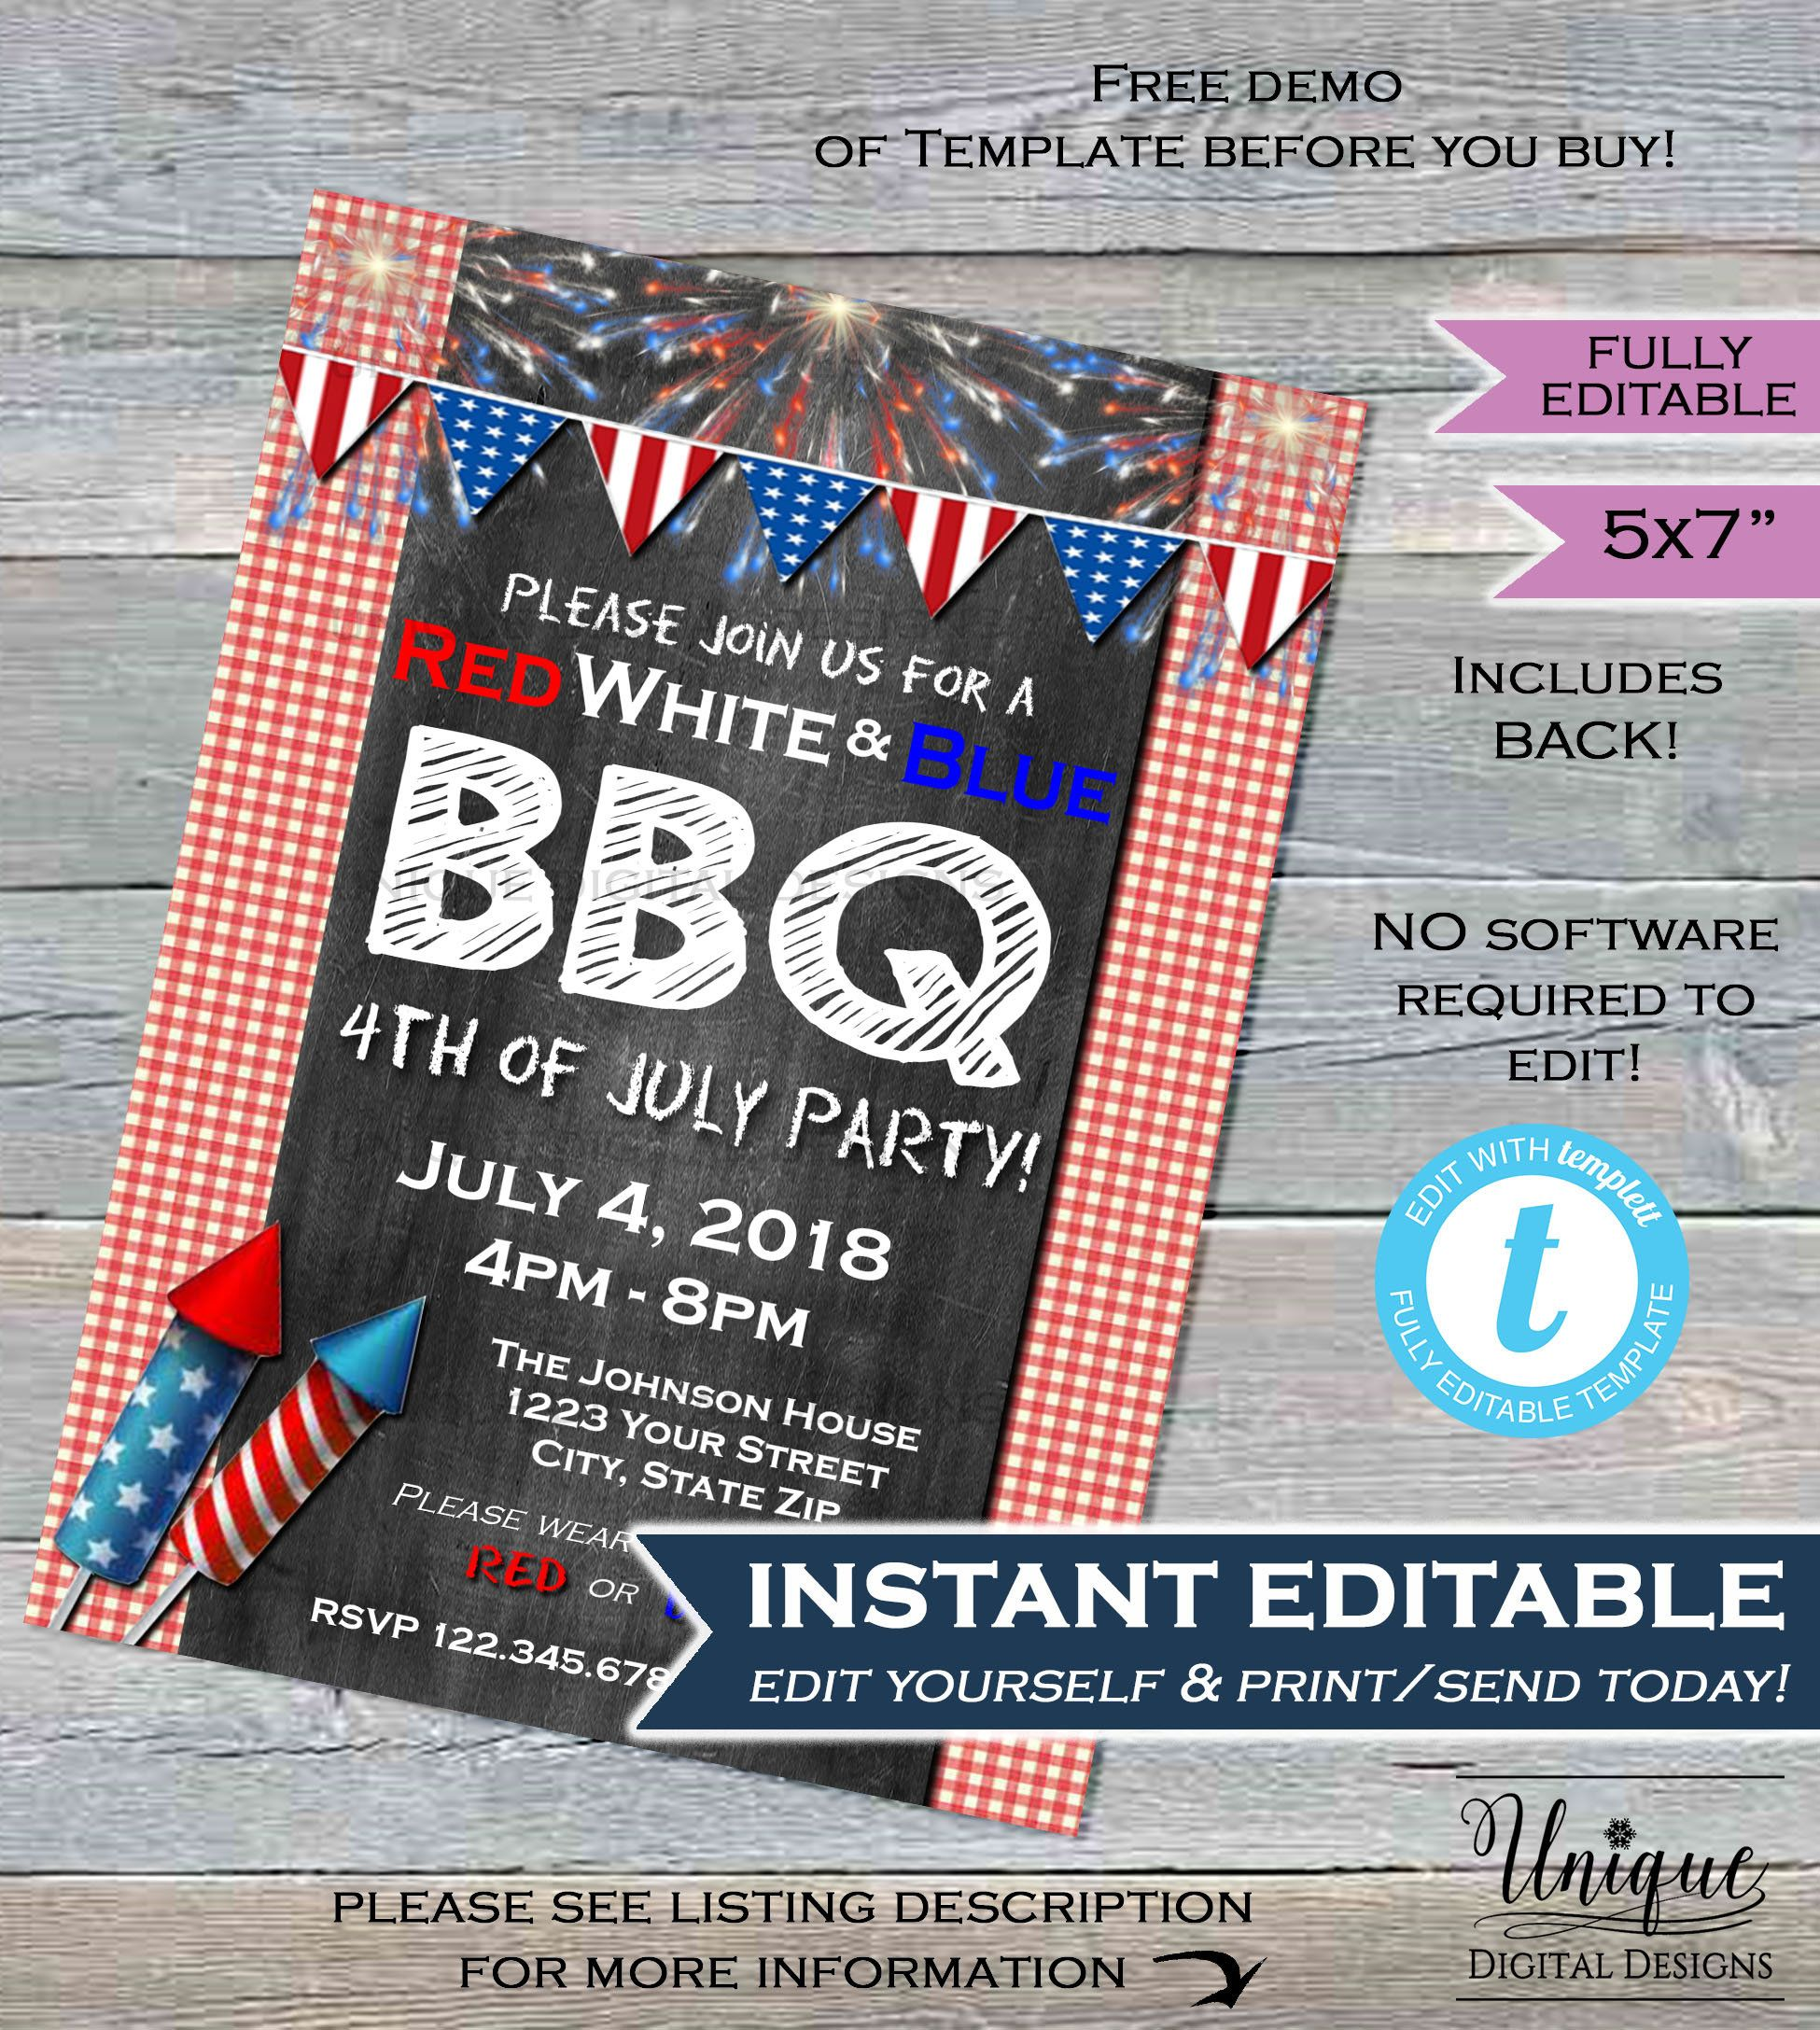 4th Of July Bbq Invitation Editable Red White And Blue Bbq Etsy Block Party Invitations Bbq Invitation 4th Of July